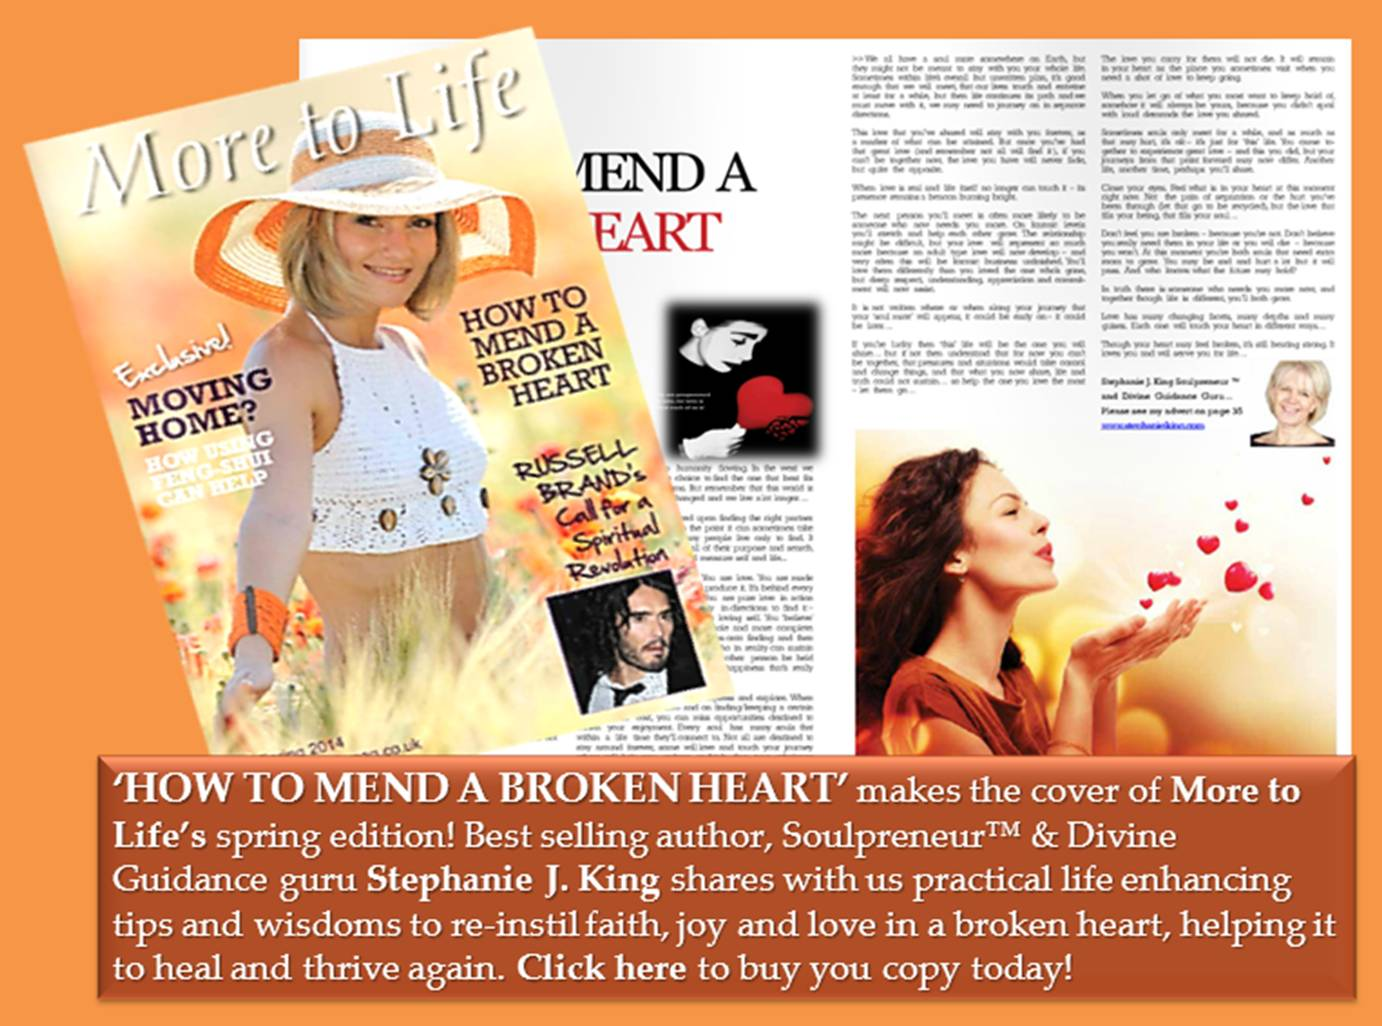 Cover story to mend a broken heart!